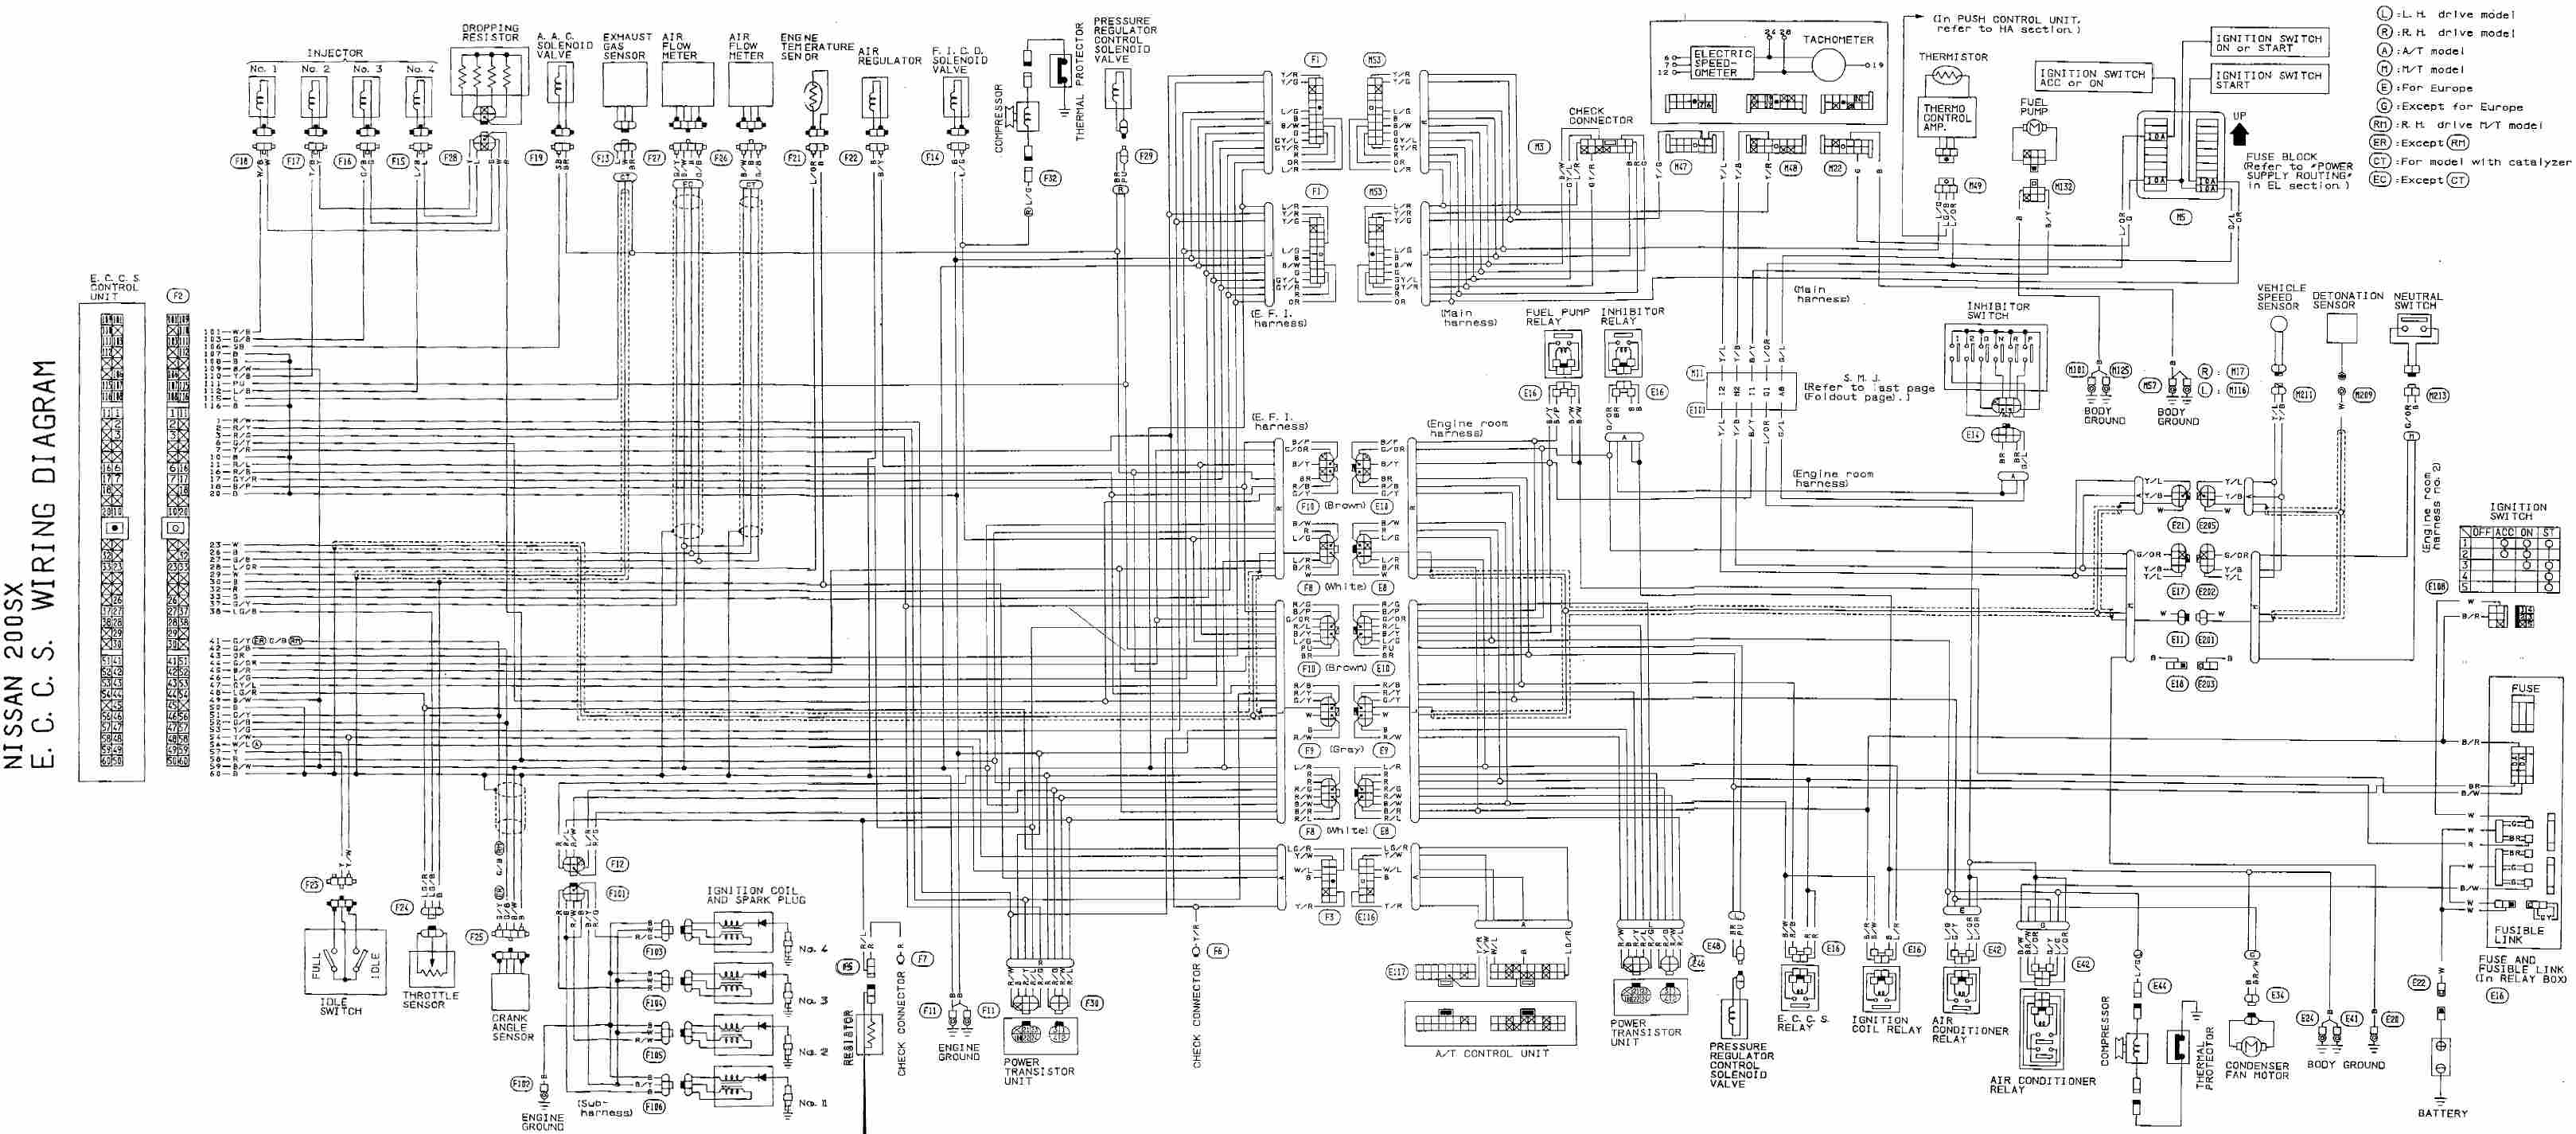 1992 Buick Park Avenue Engine Diagram Wiring Libraries 2001 Library1992 Nissan Pickup Diagrams